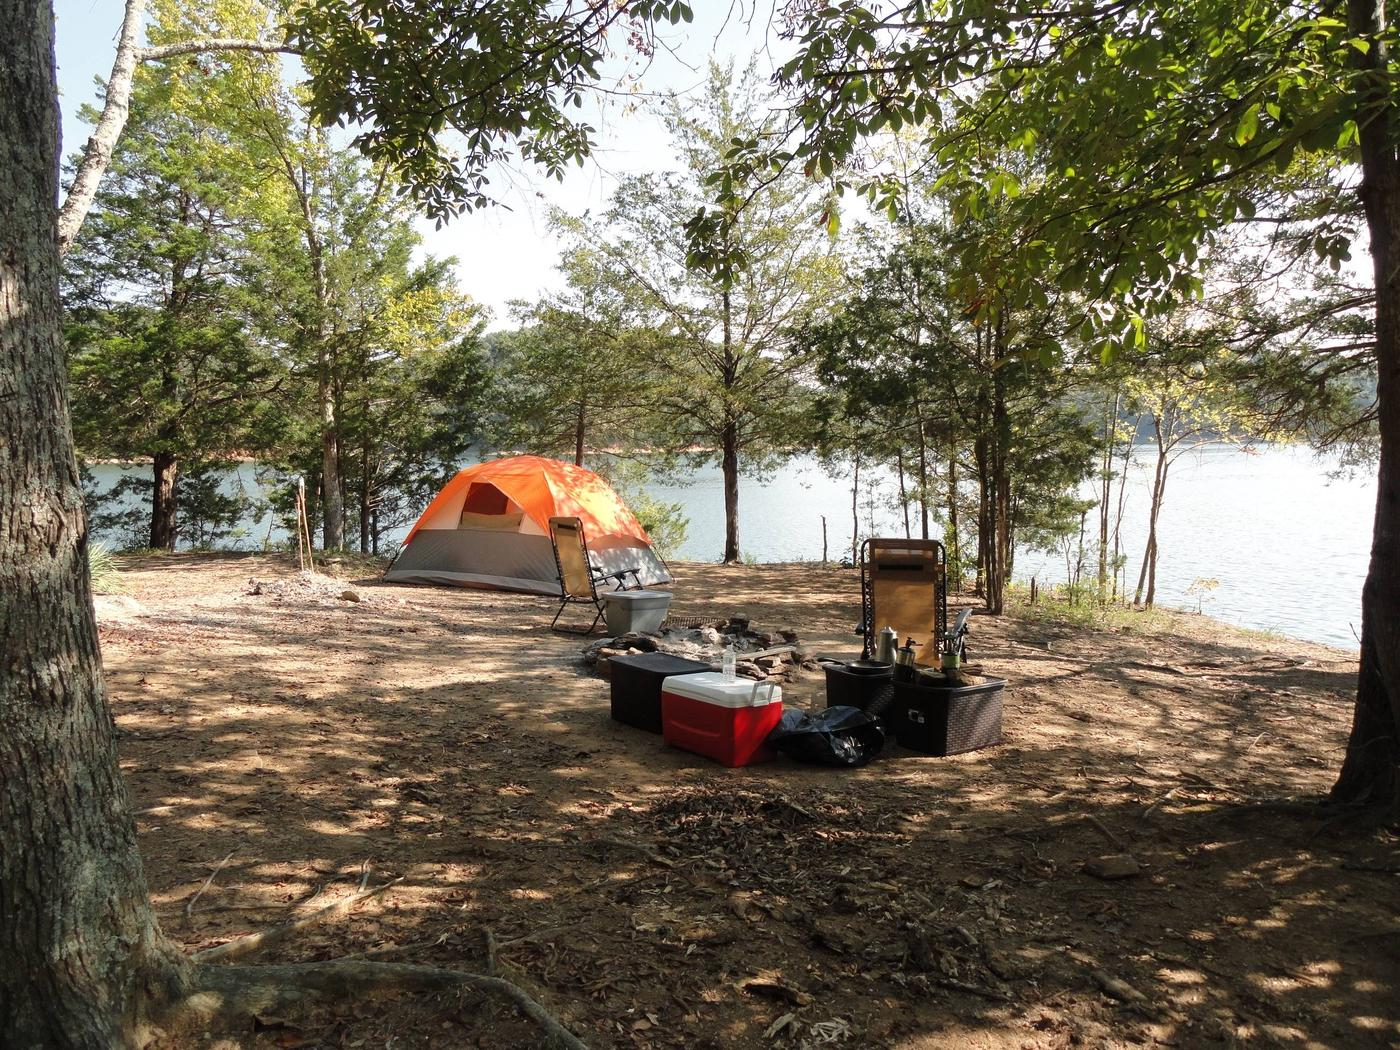 DALE HOLLOW LAKE - PRIMITIVE CAMPING BOAT IN SITES